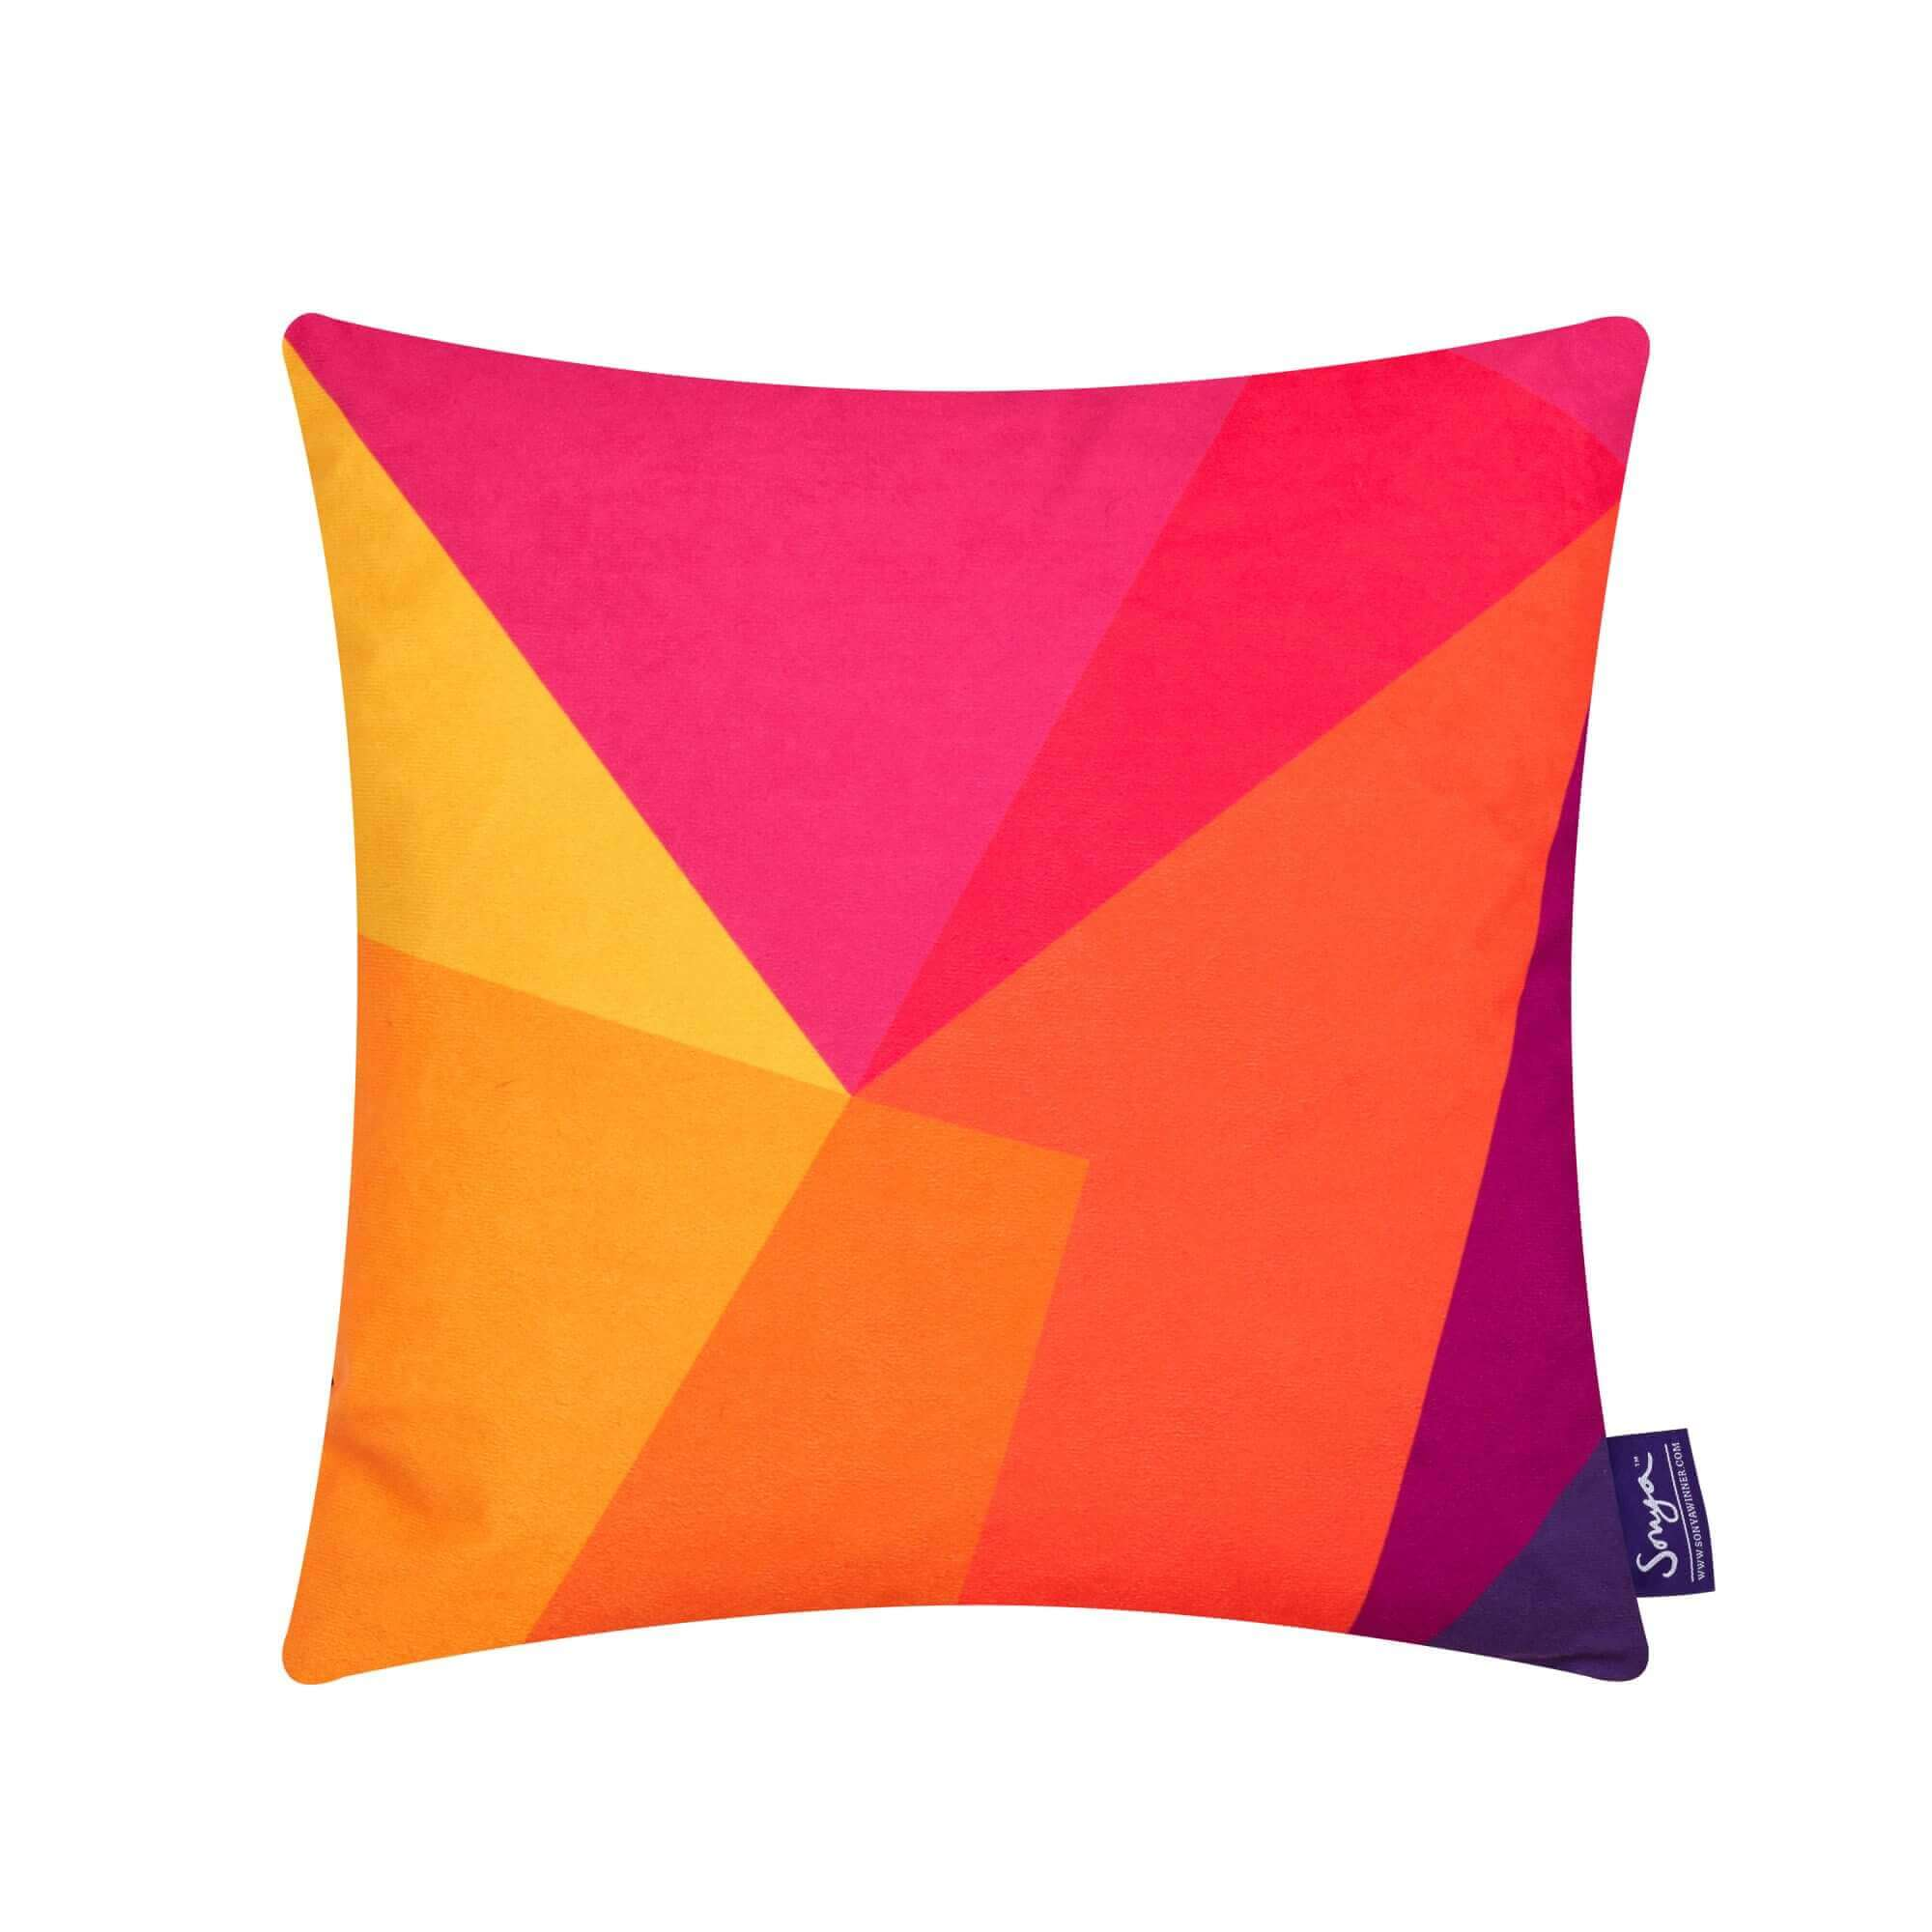 A cropped detail image of the bright and stylish Sonya Winner After Matisse Sunset cushion, showcasing the bright red, yellow and pink colours, geometric pattern and rich texture